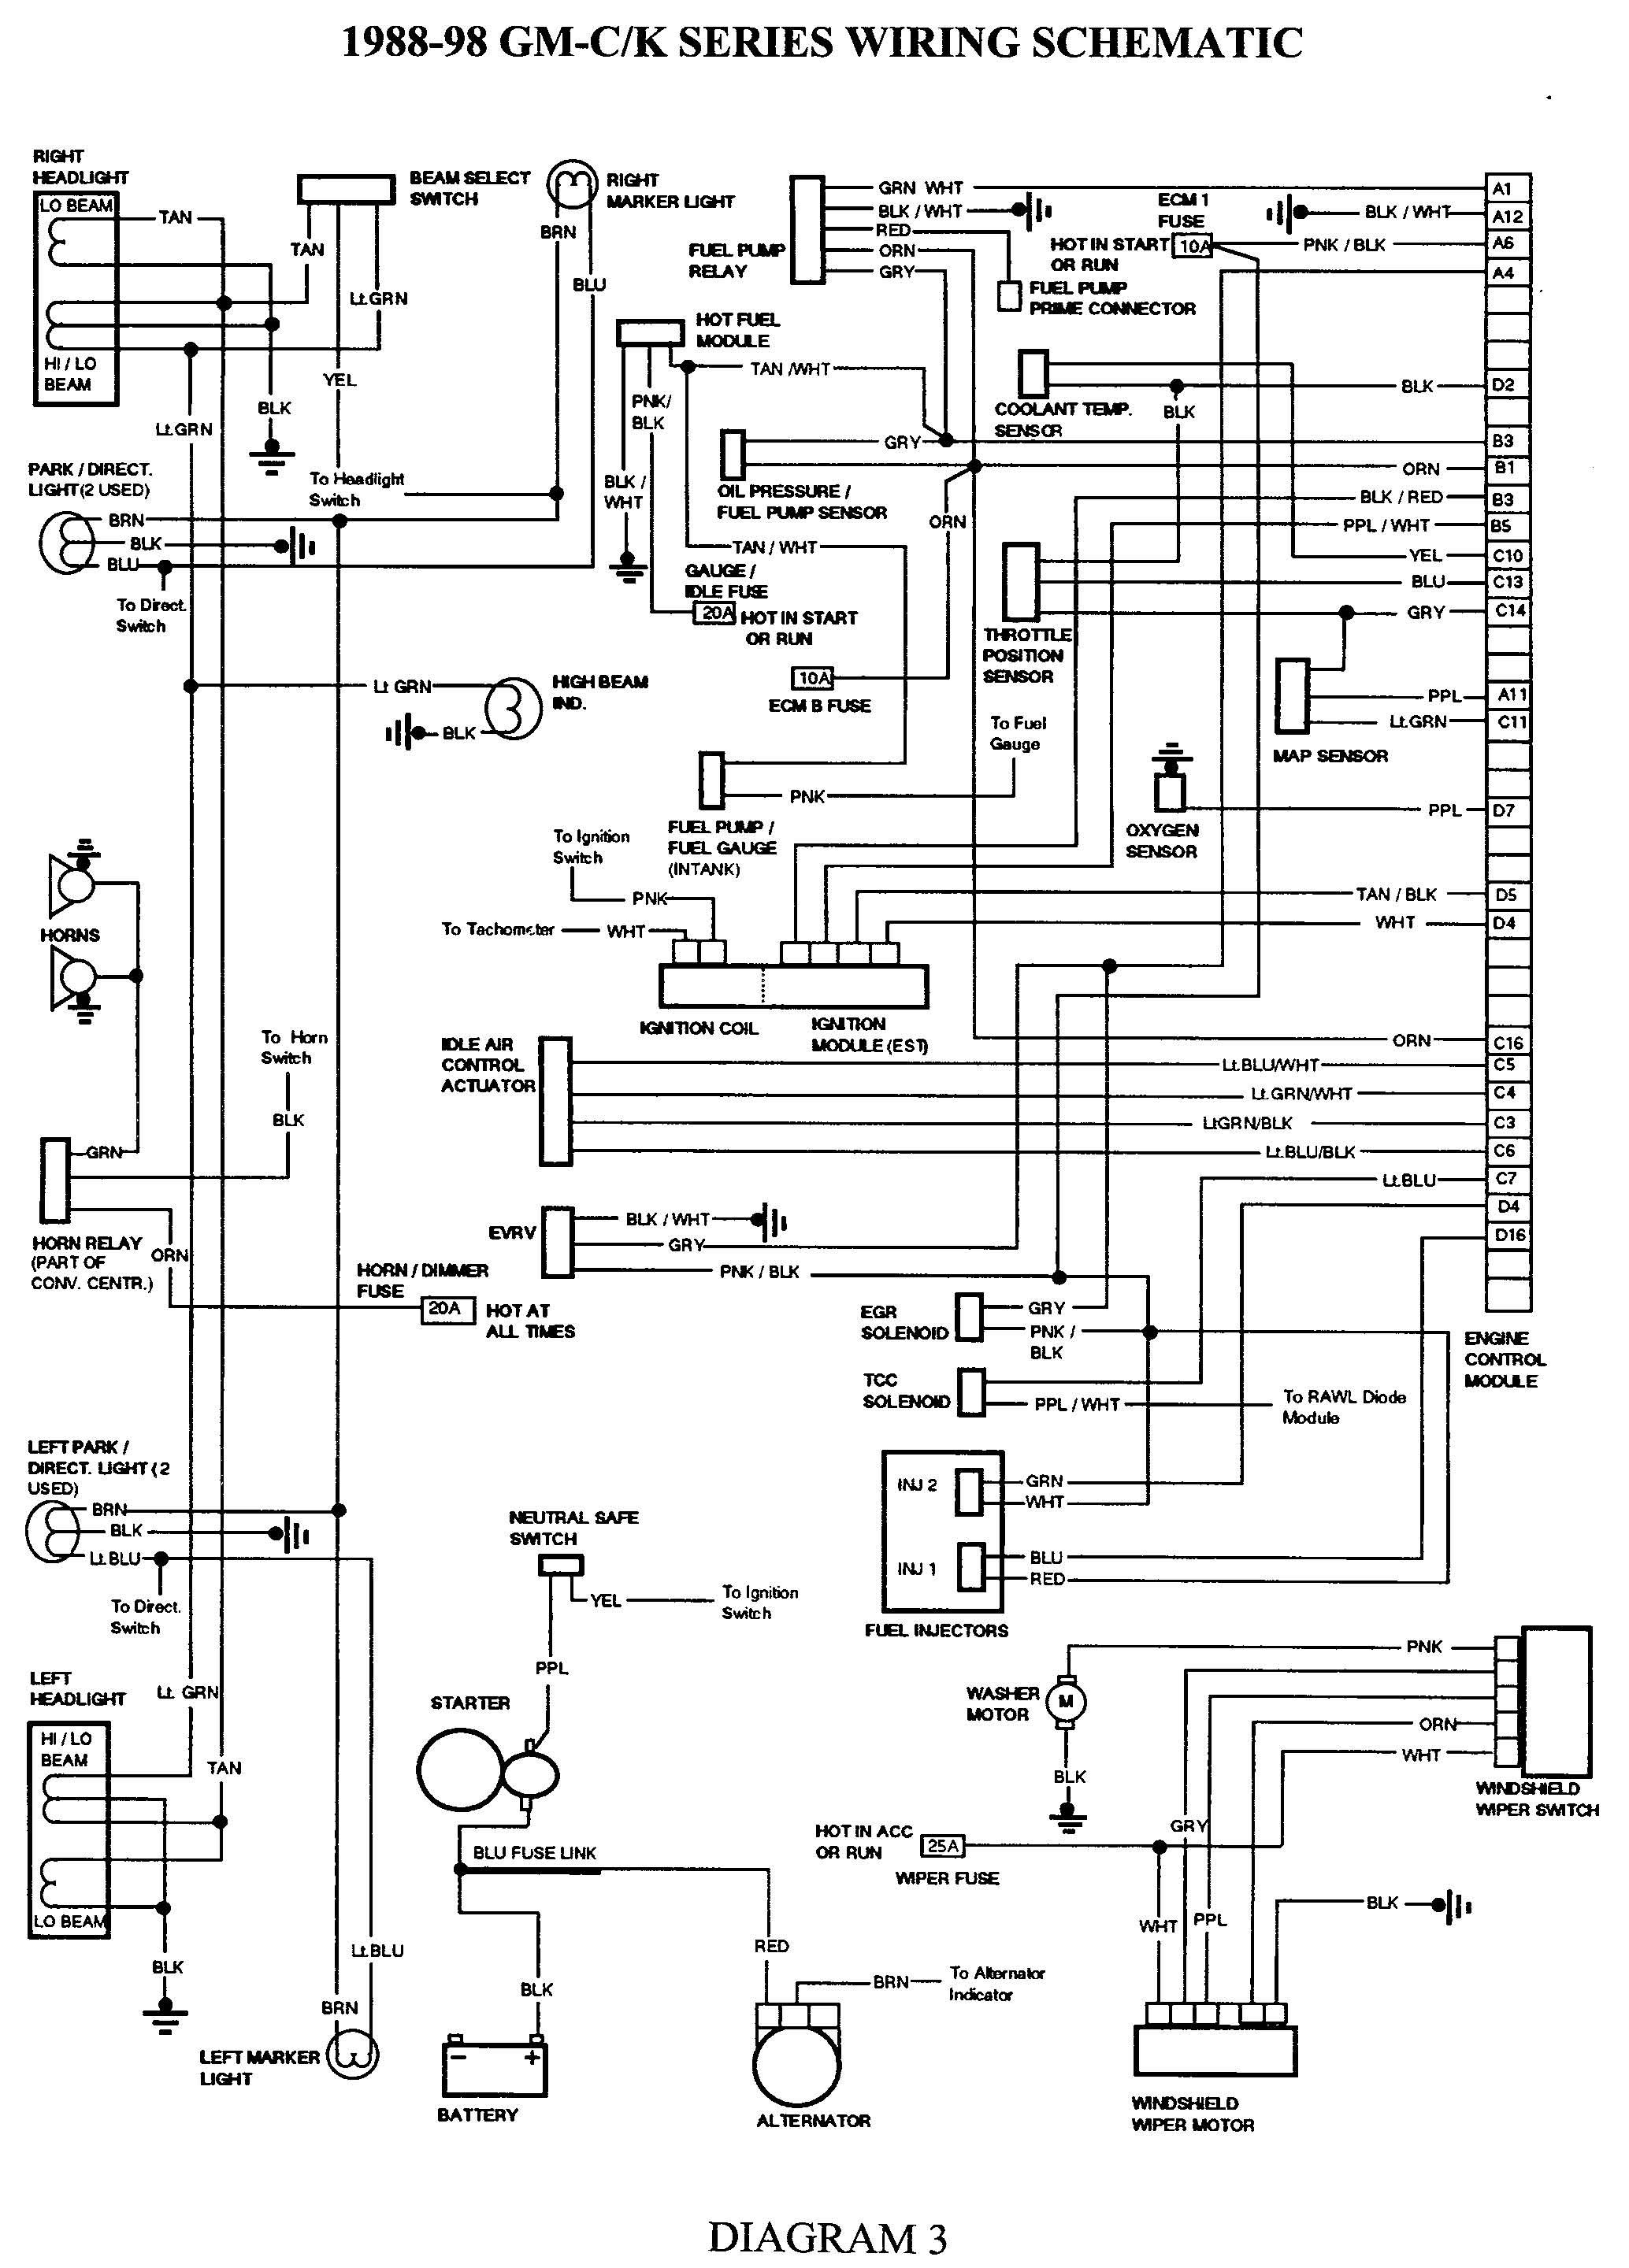 gmc truck wiring diagrams on gm wiring harness diagram 88 98 kc mercedes benz trailer hitch wiring harness free image wiring diagram [ 2068 x 2880 Pixel ]